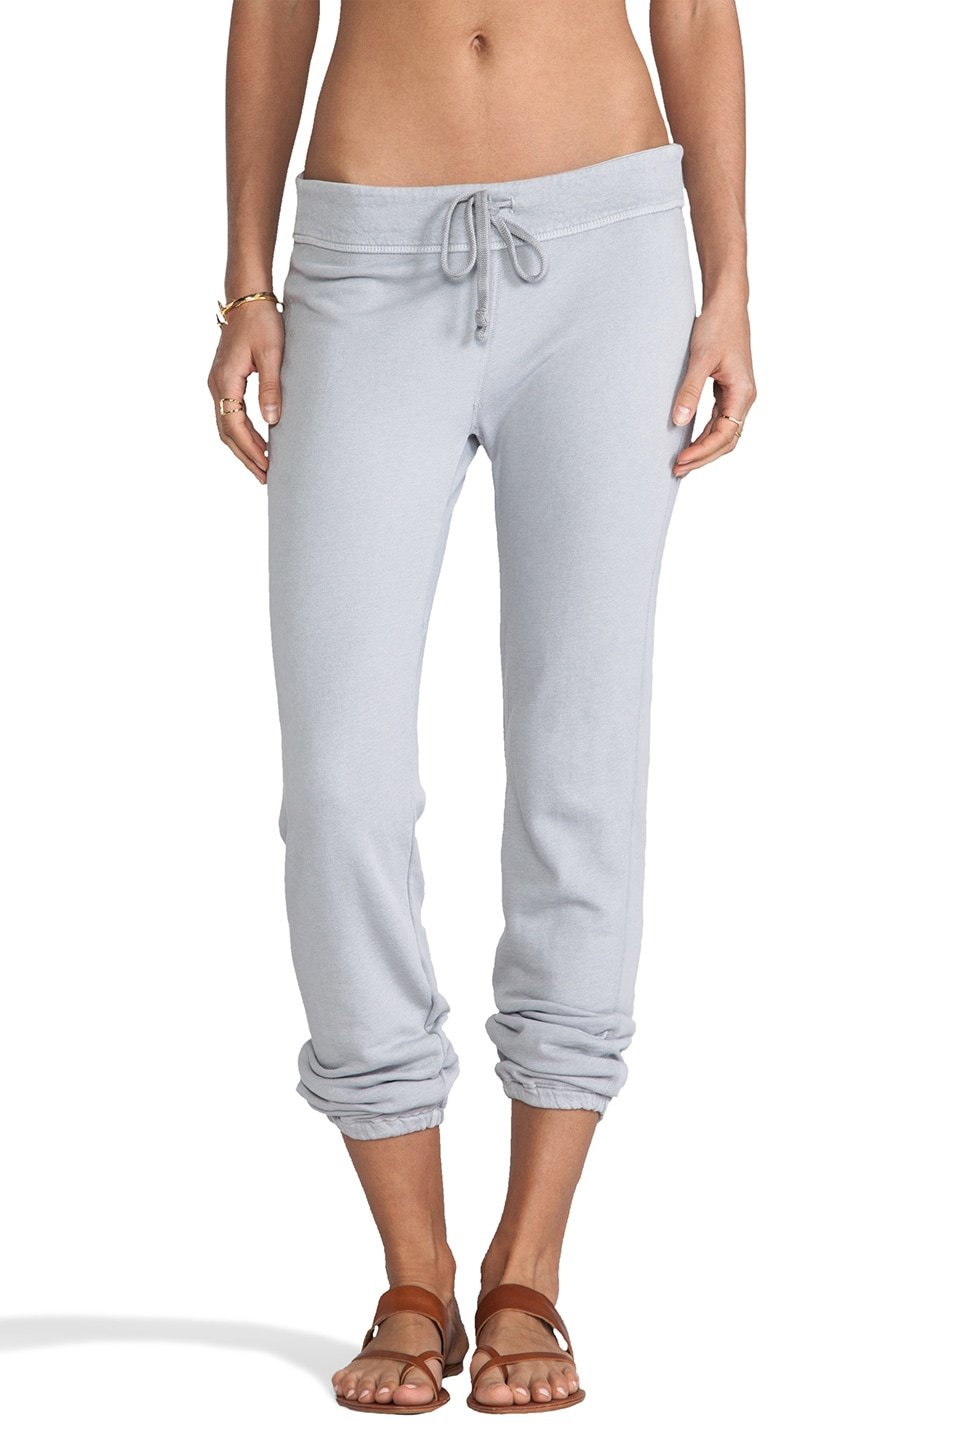 James Perse Genie Sweat Pant in Fog